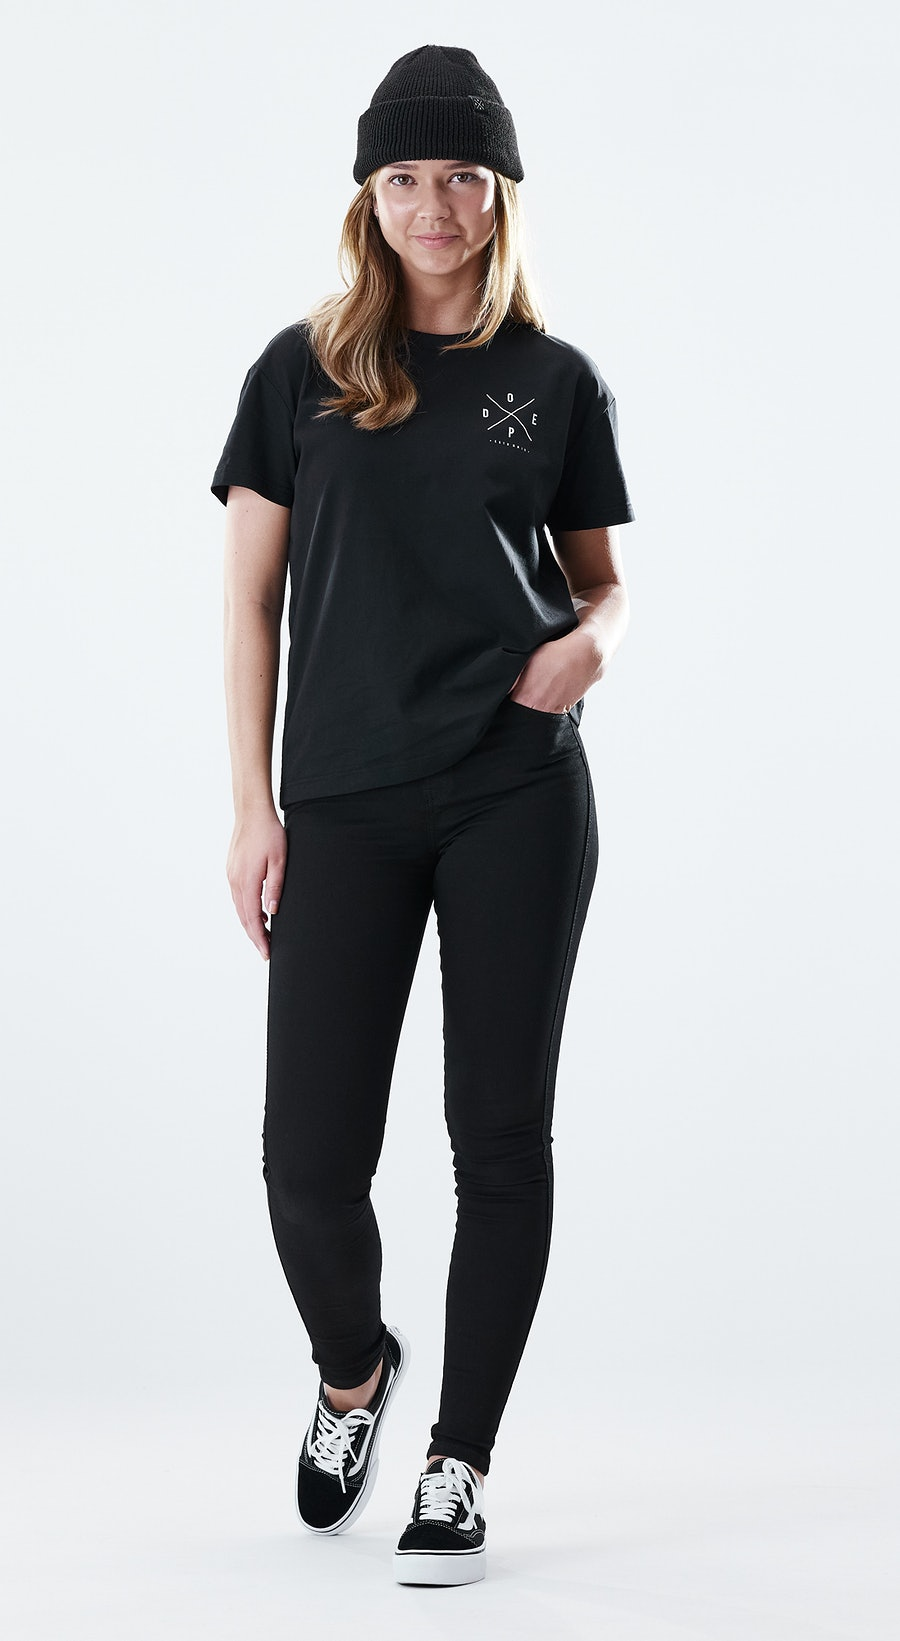 Dope Regular 2X-UP Black Outfit Multi